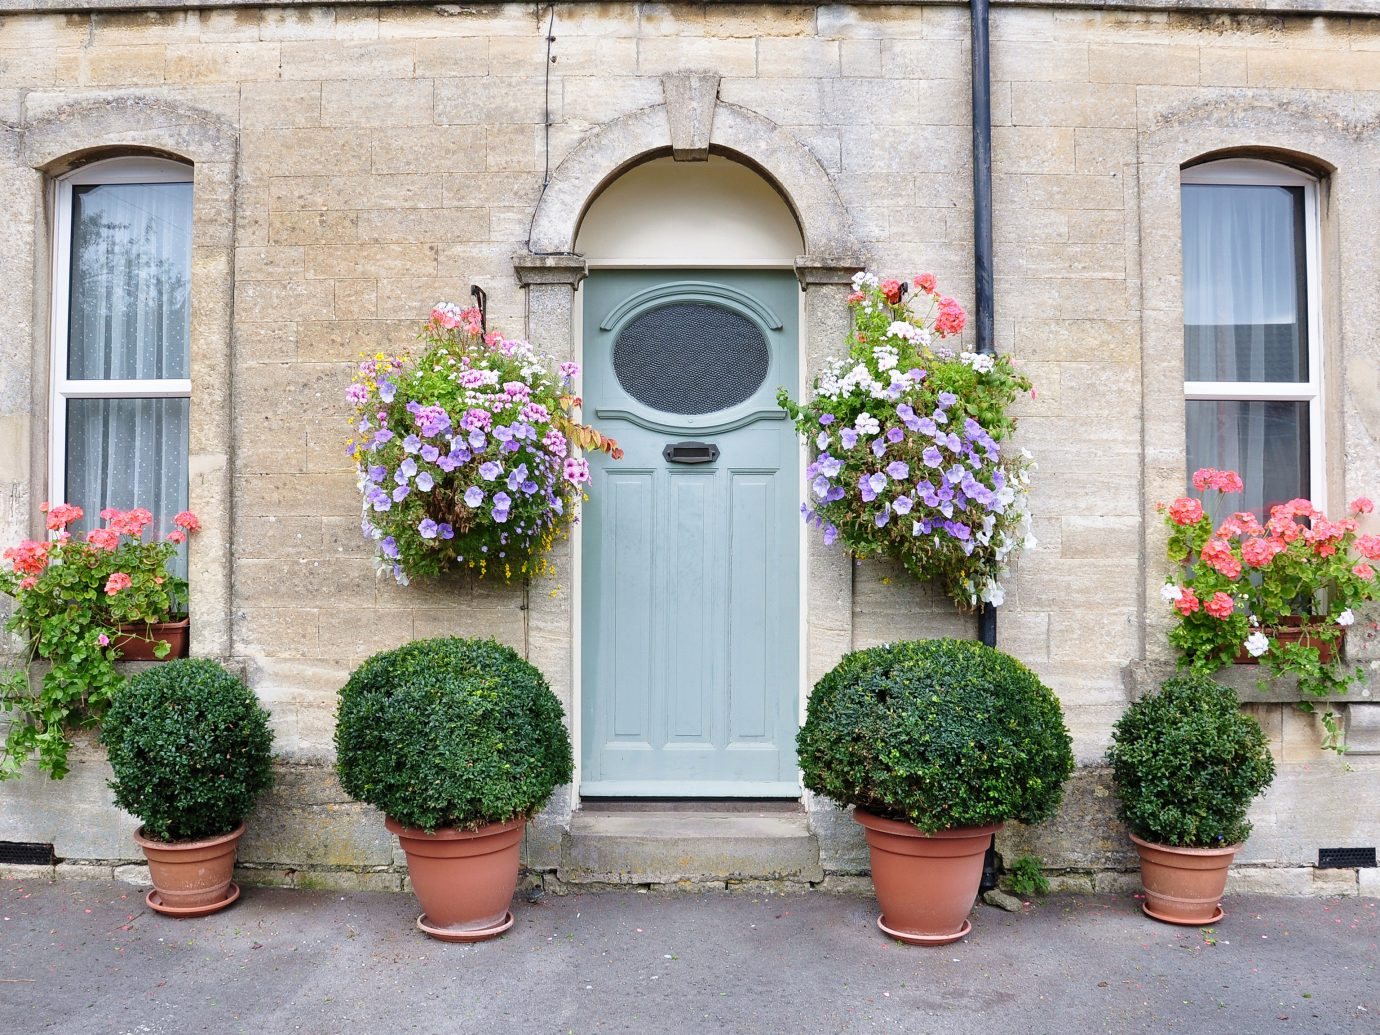 Offbeat outdoor building man made object flower green Garden plant stone home Courtyard facade door window yard arch bushes